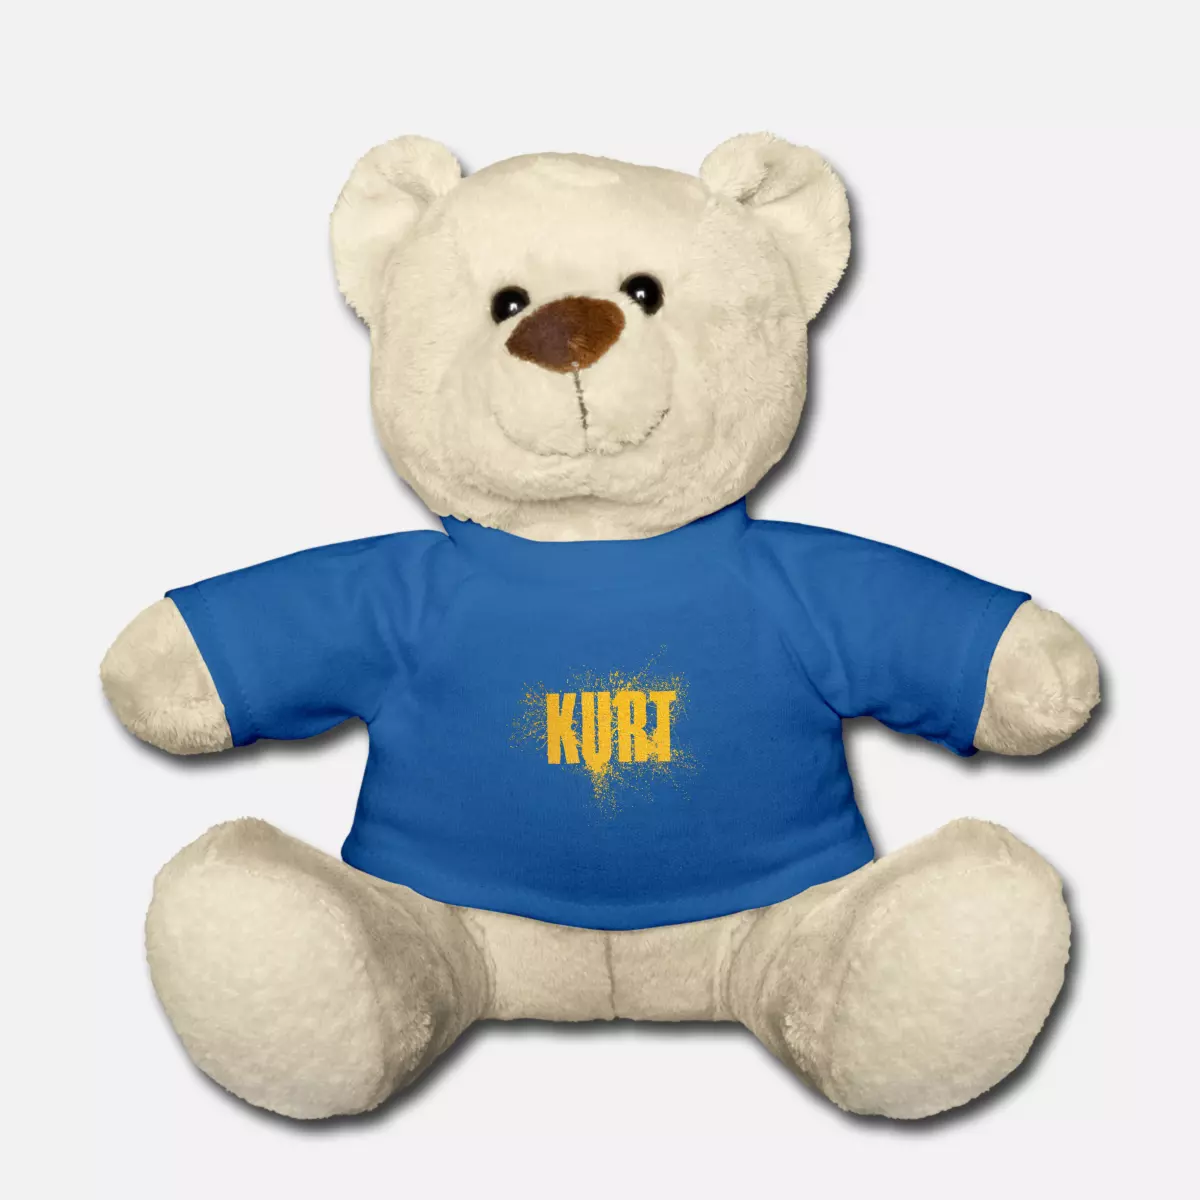 Kurt teddy bear usr0815